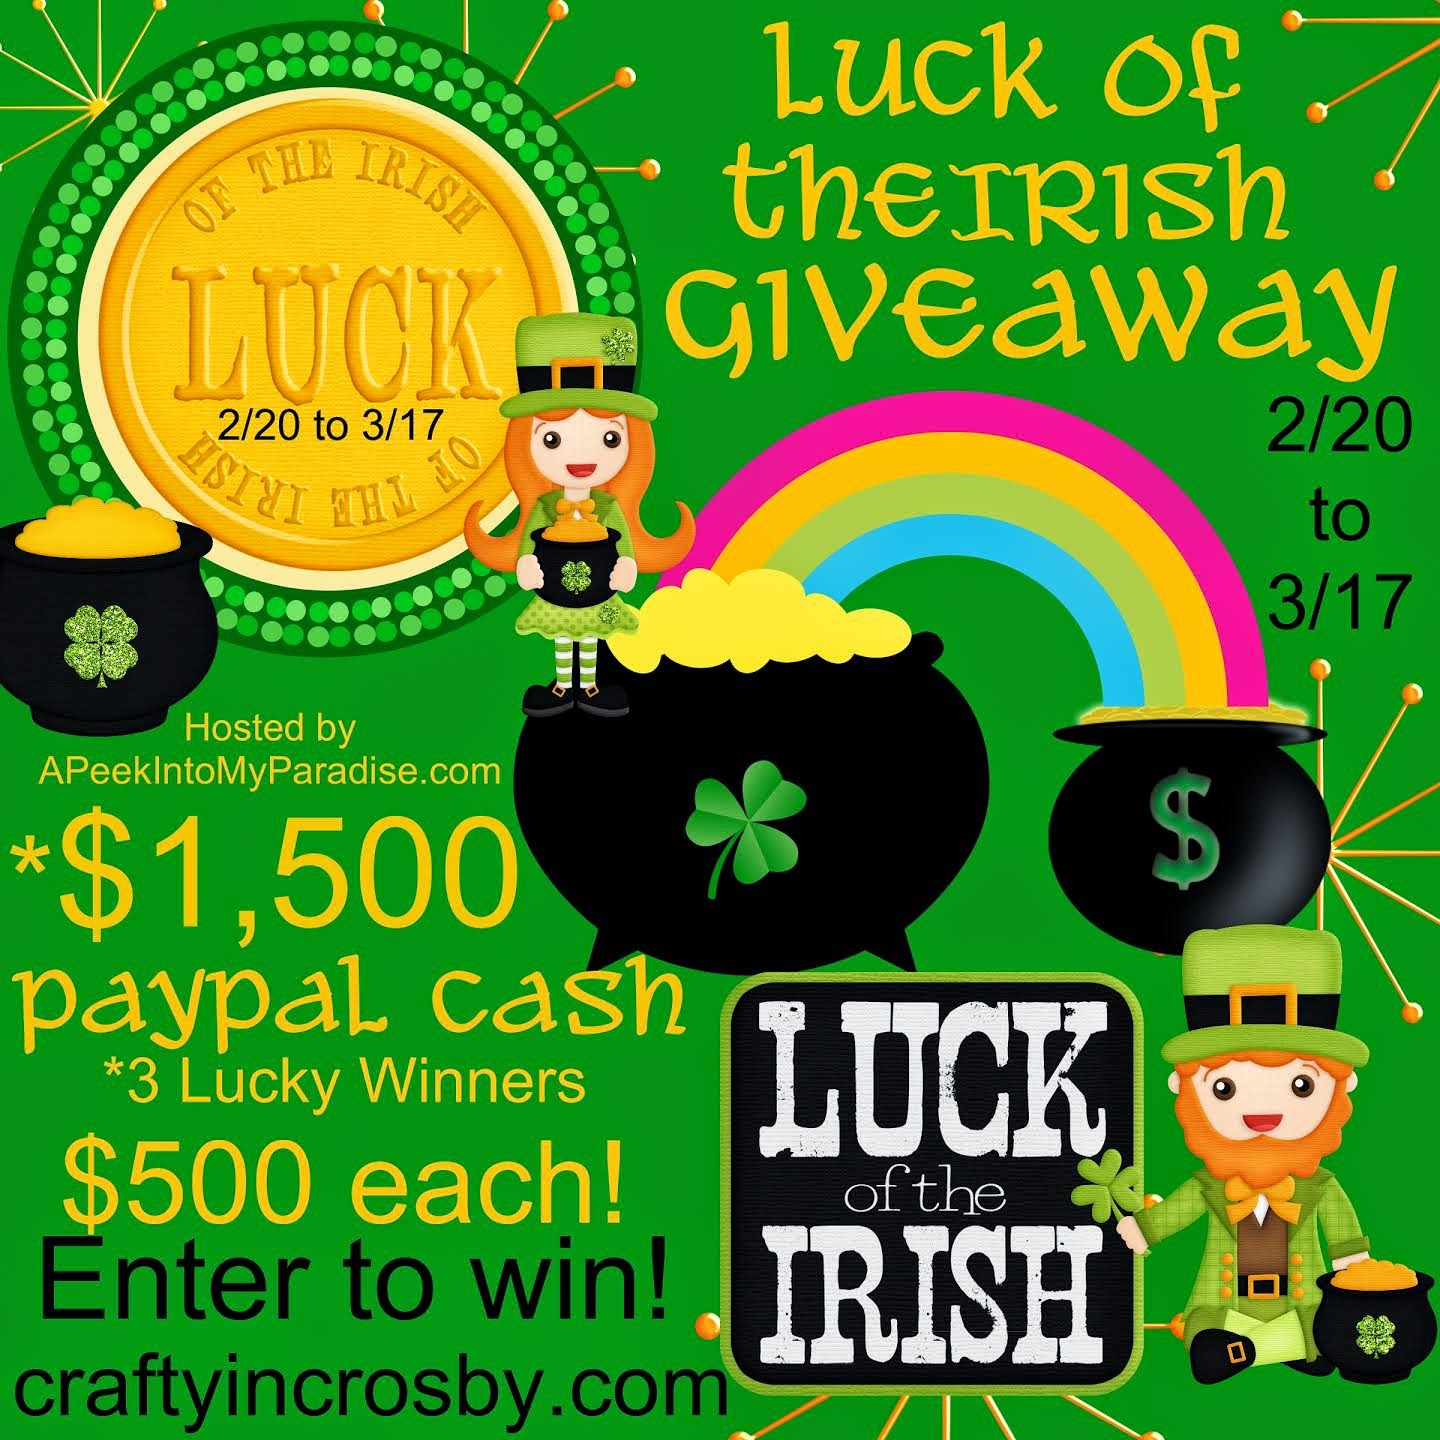 Enter the Luck Of the Irish Giveaway